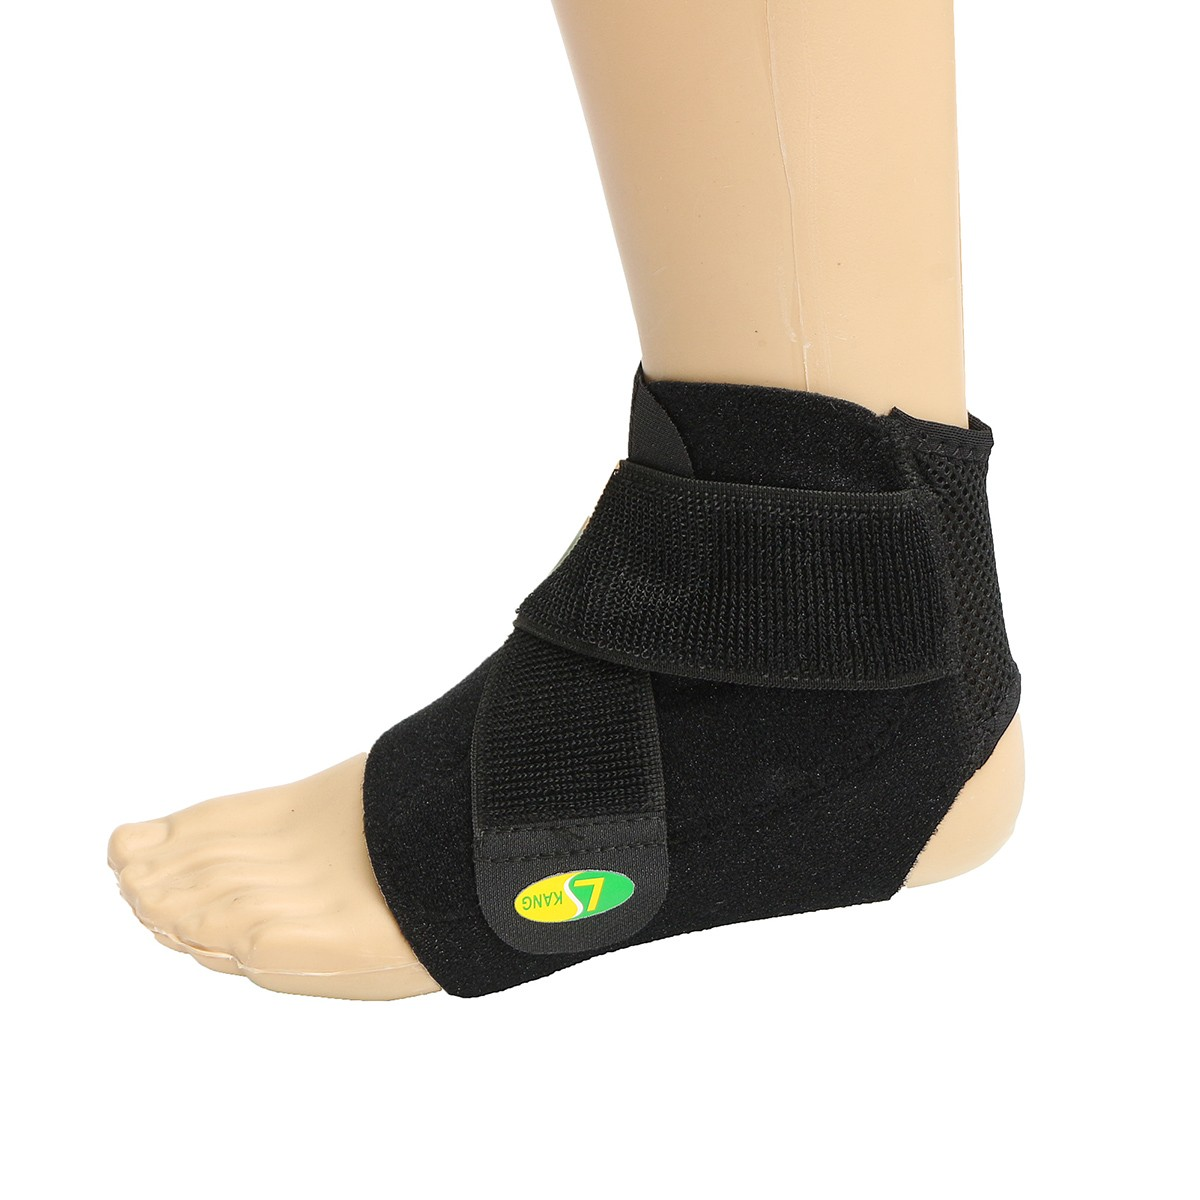 Breathable Foot Sprain Prevention Injury Orthotic Wrap Neoprene Ankle Feeet Support Brace